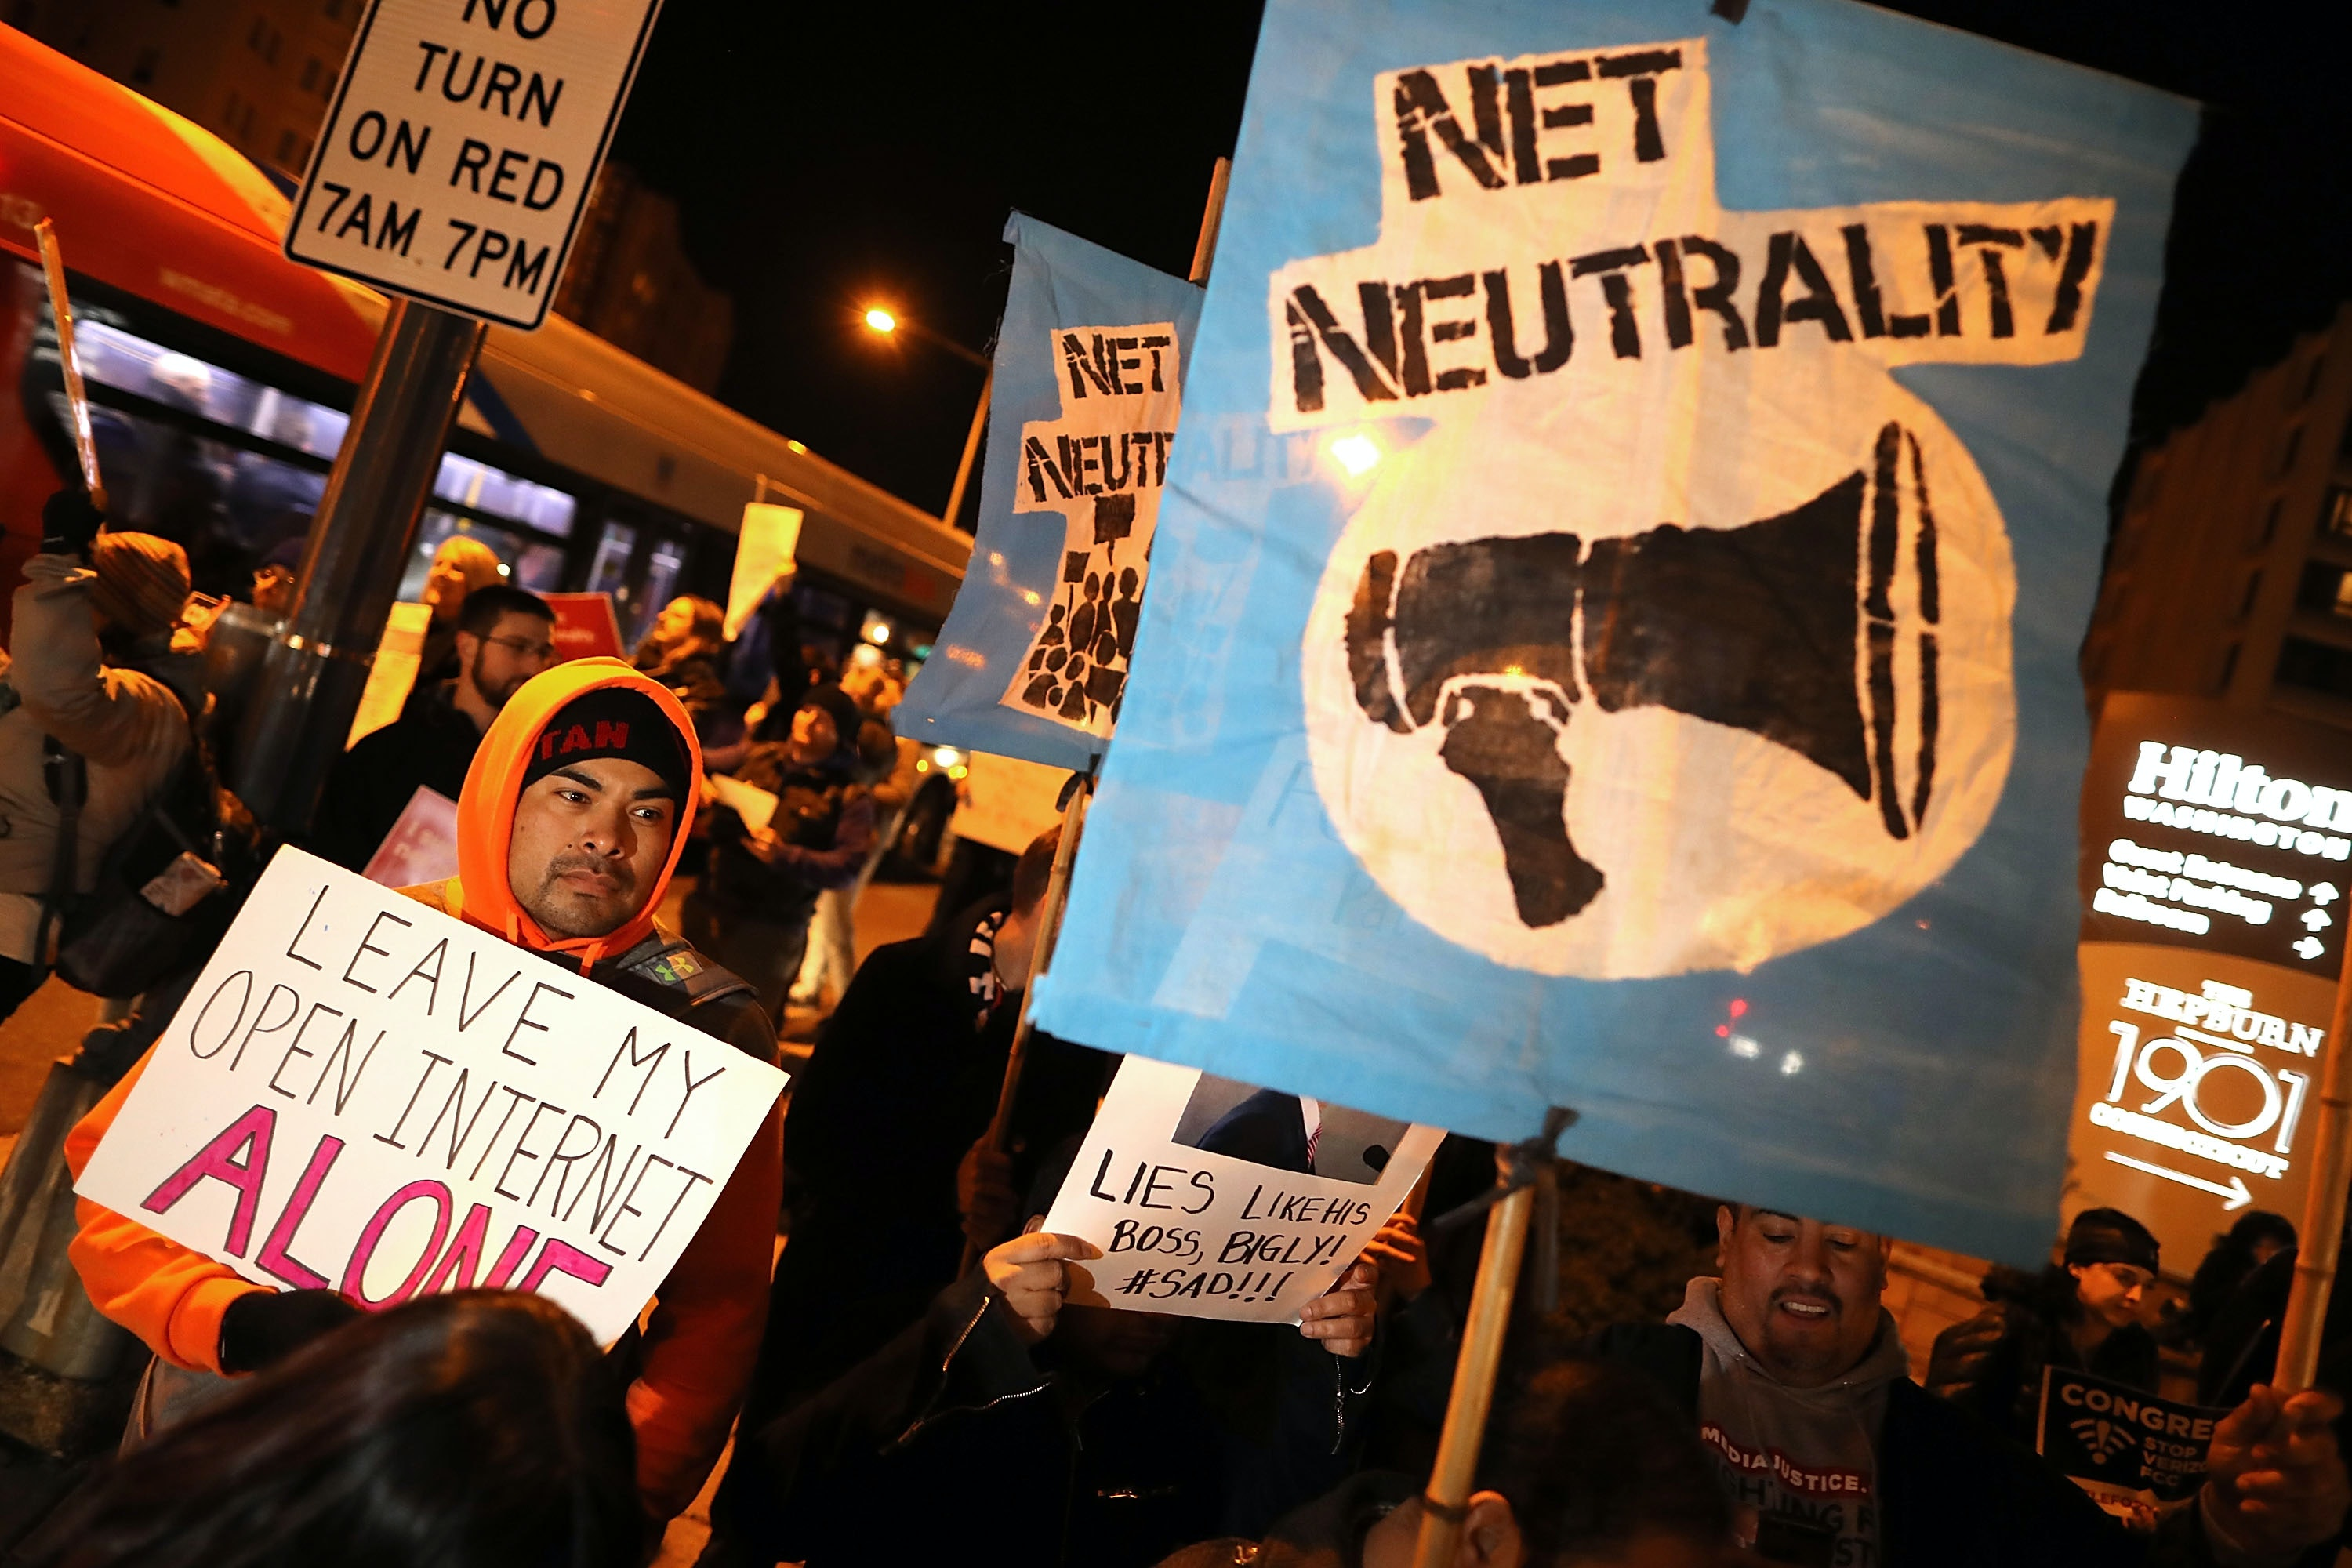 Up to 10 million net neutrality comments were bogus